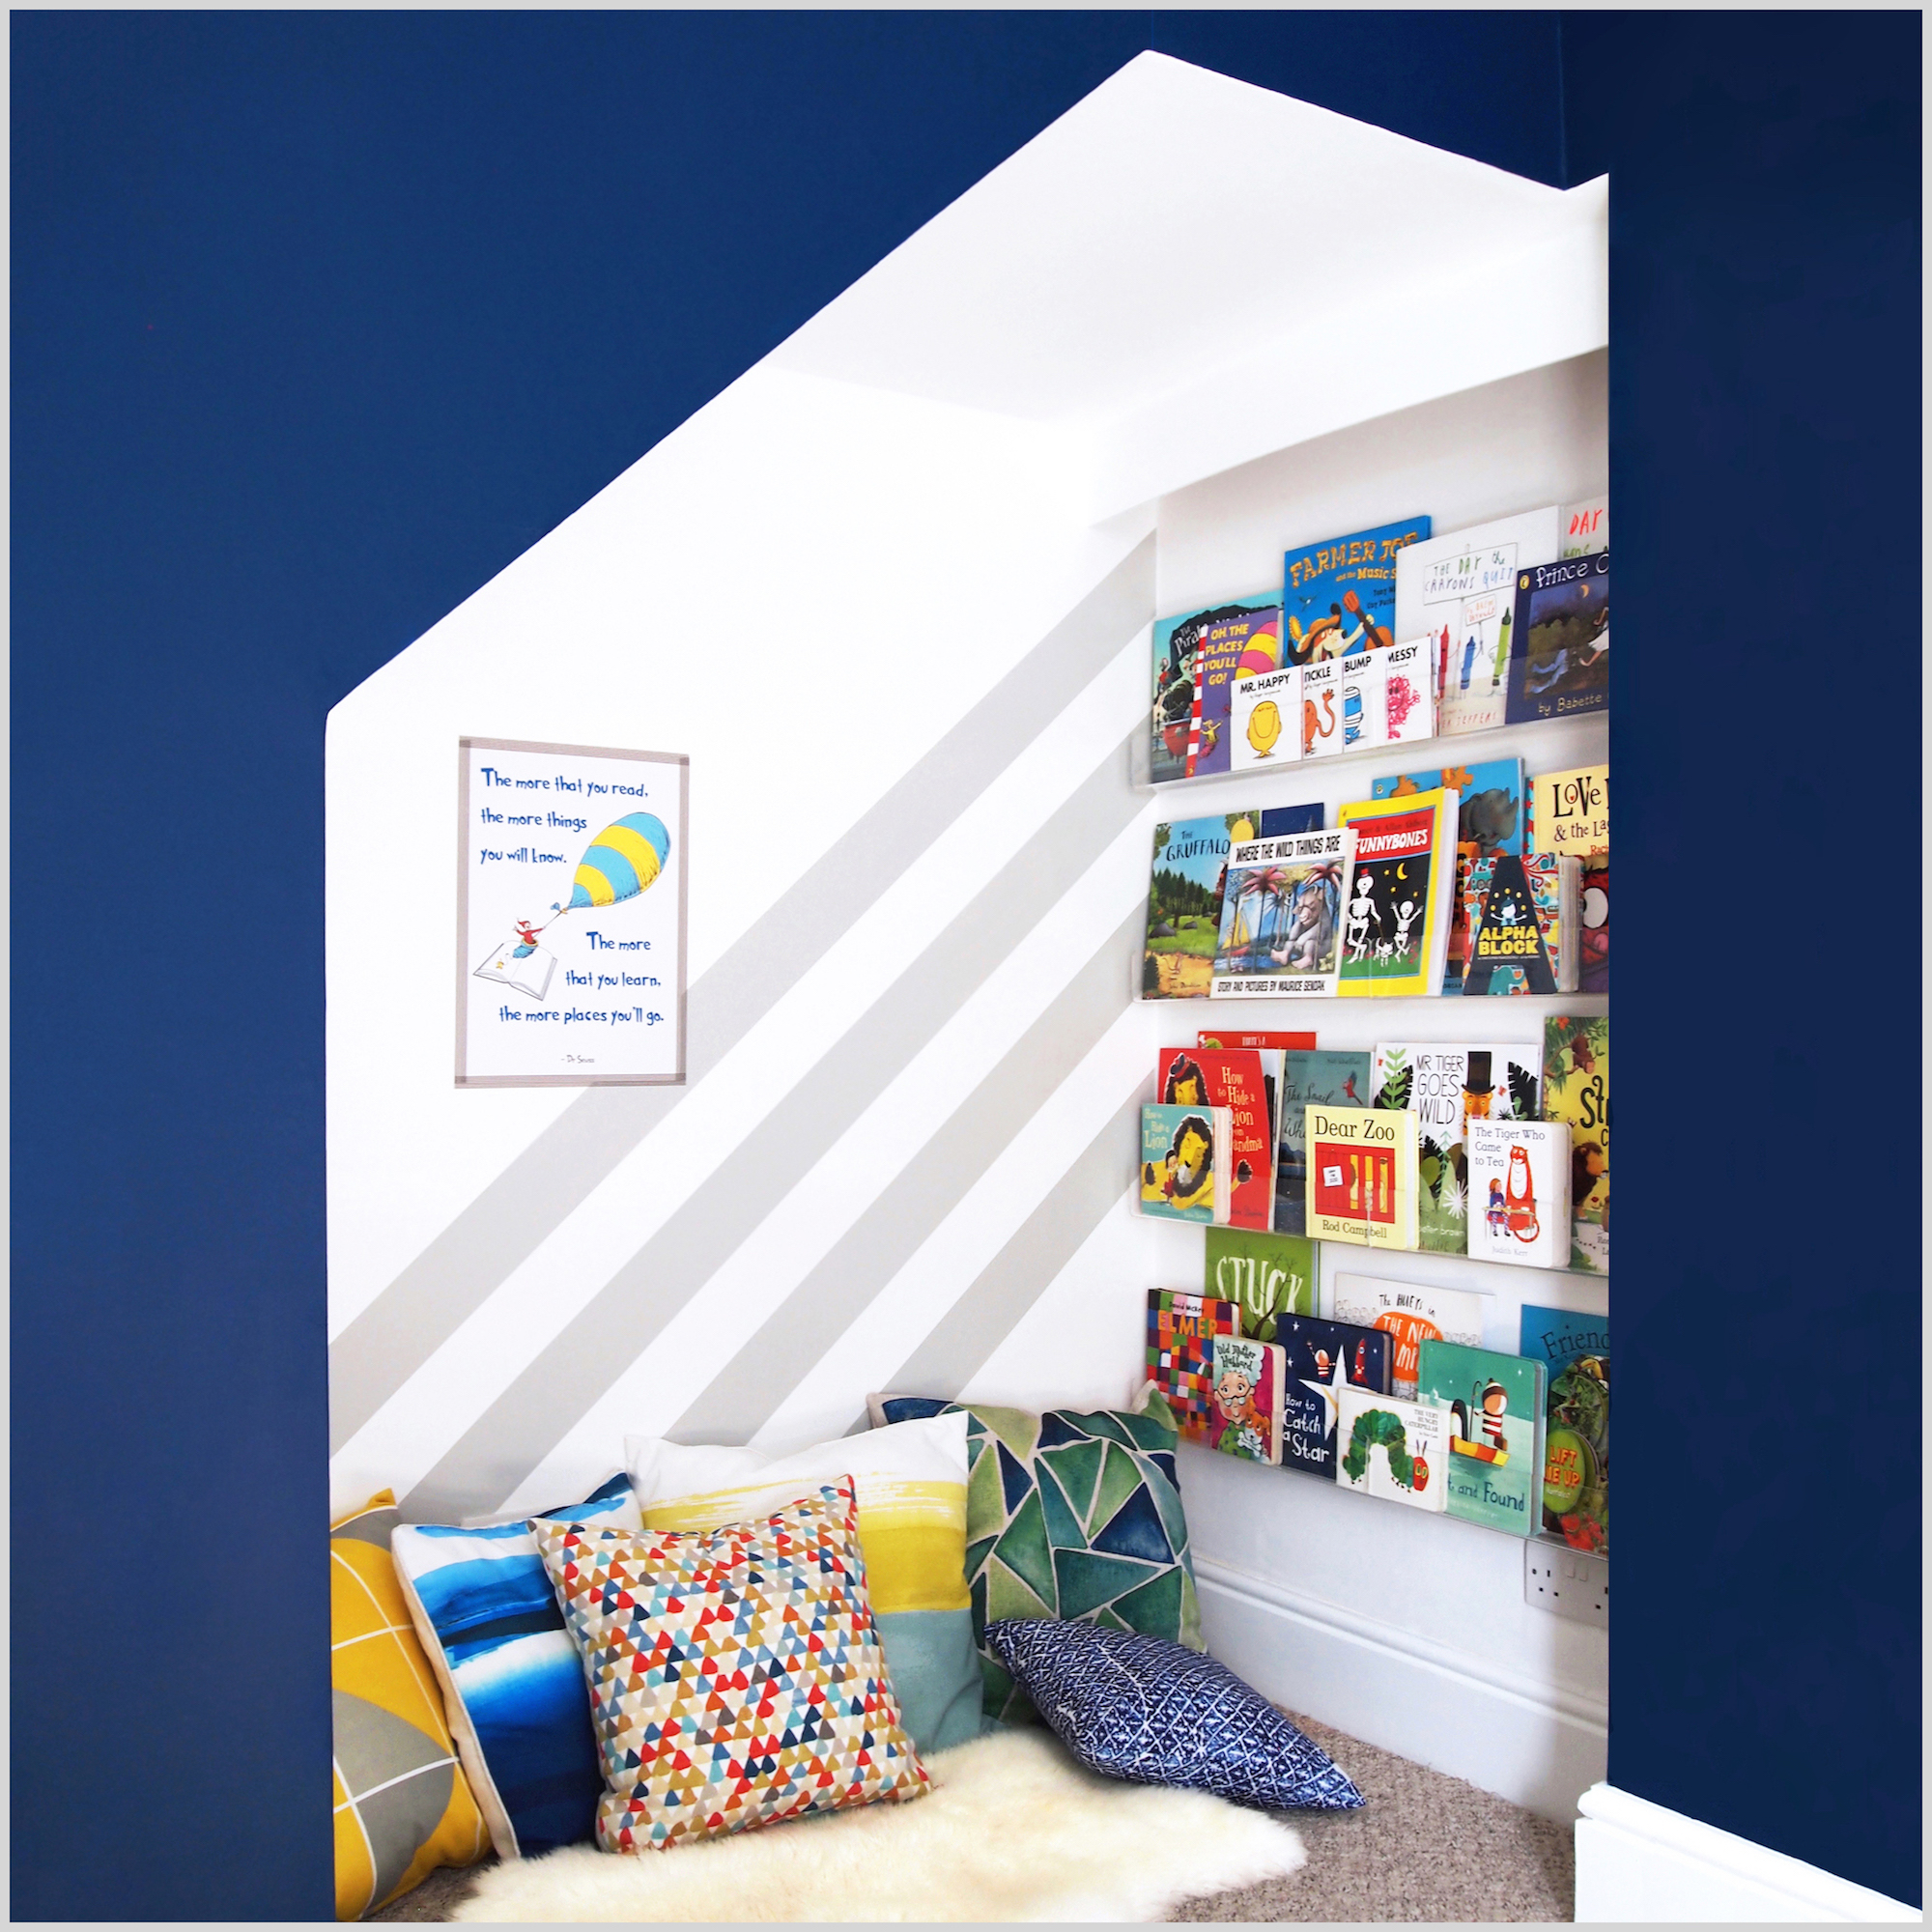 Children's interior design; Interiors for children